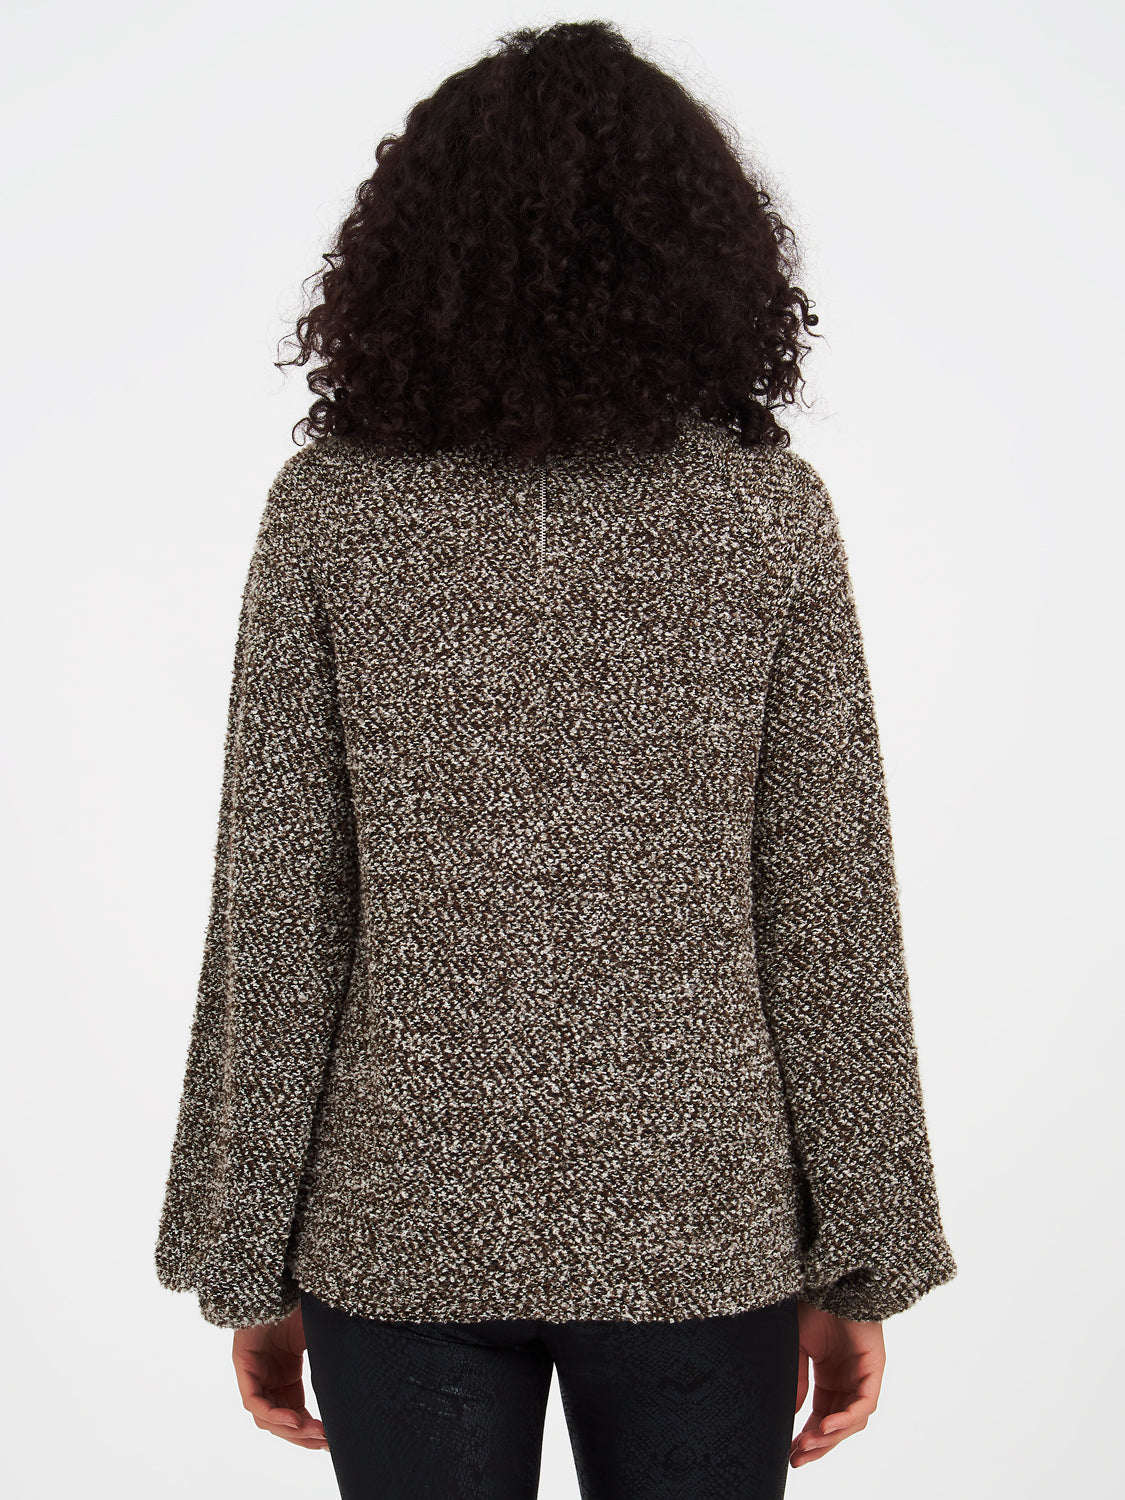 Boucle Knit Funnel Sweater Top